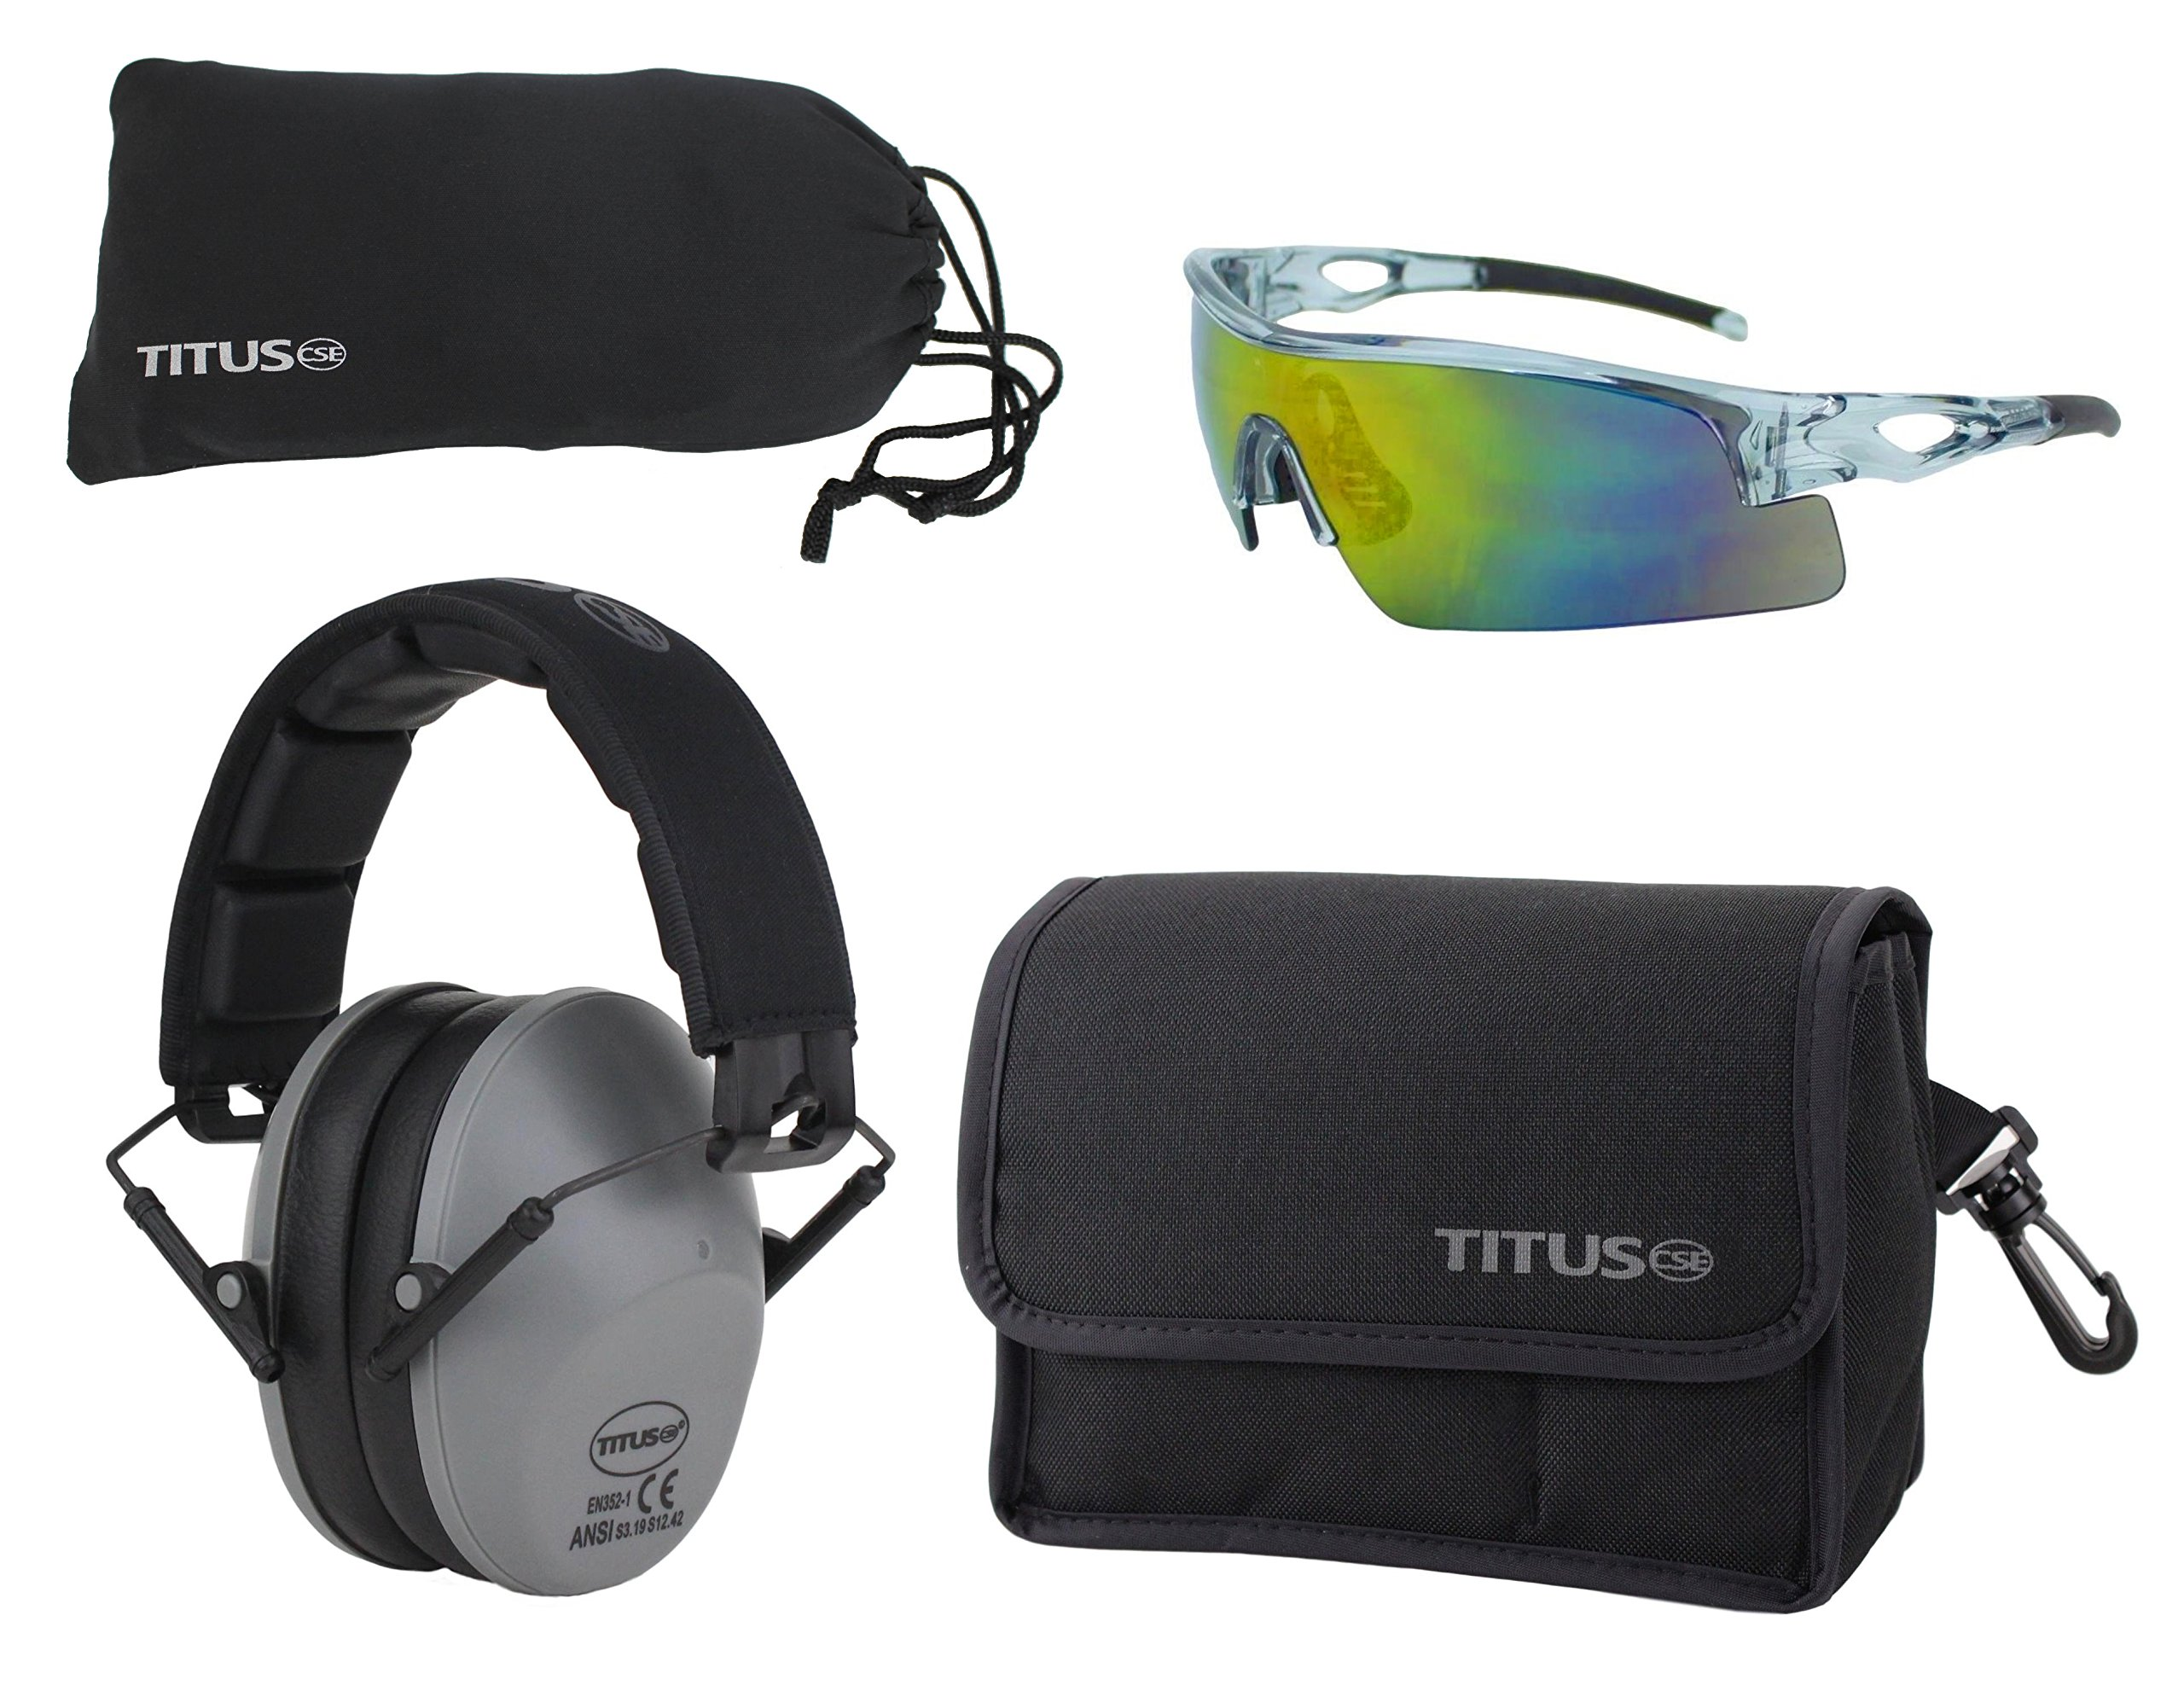 Titus TOP Slim-Line Safety Glasses and Earmuff Combos (Grey, G21 Full-Spectrum Mirrored w/All-Sport Frame)